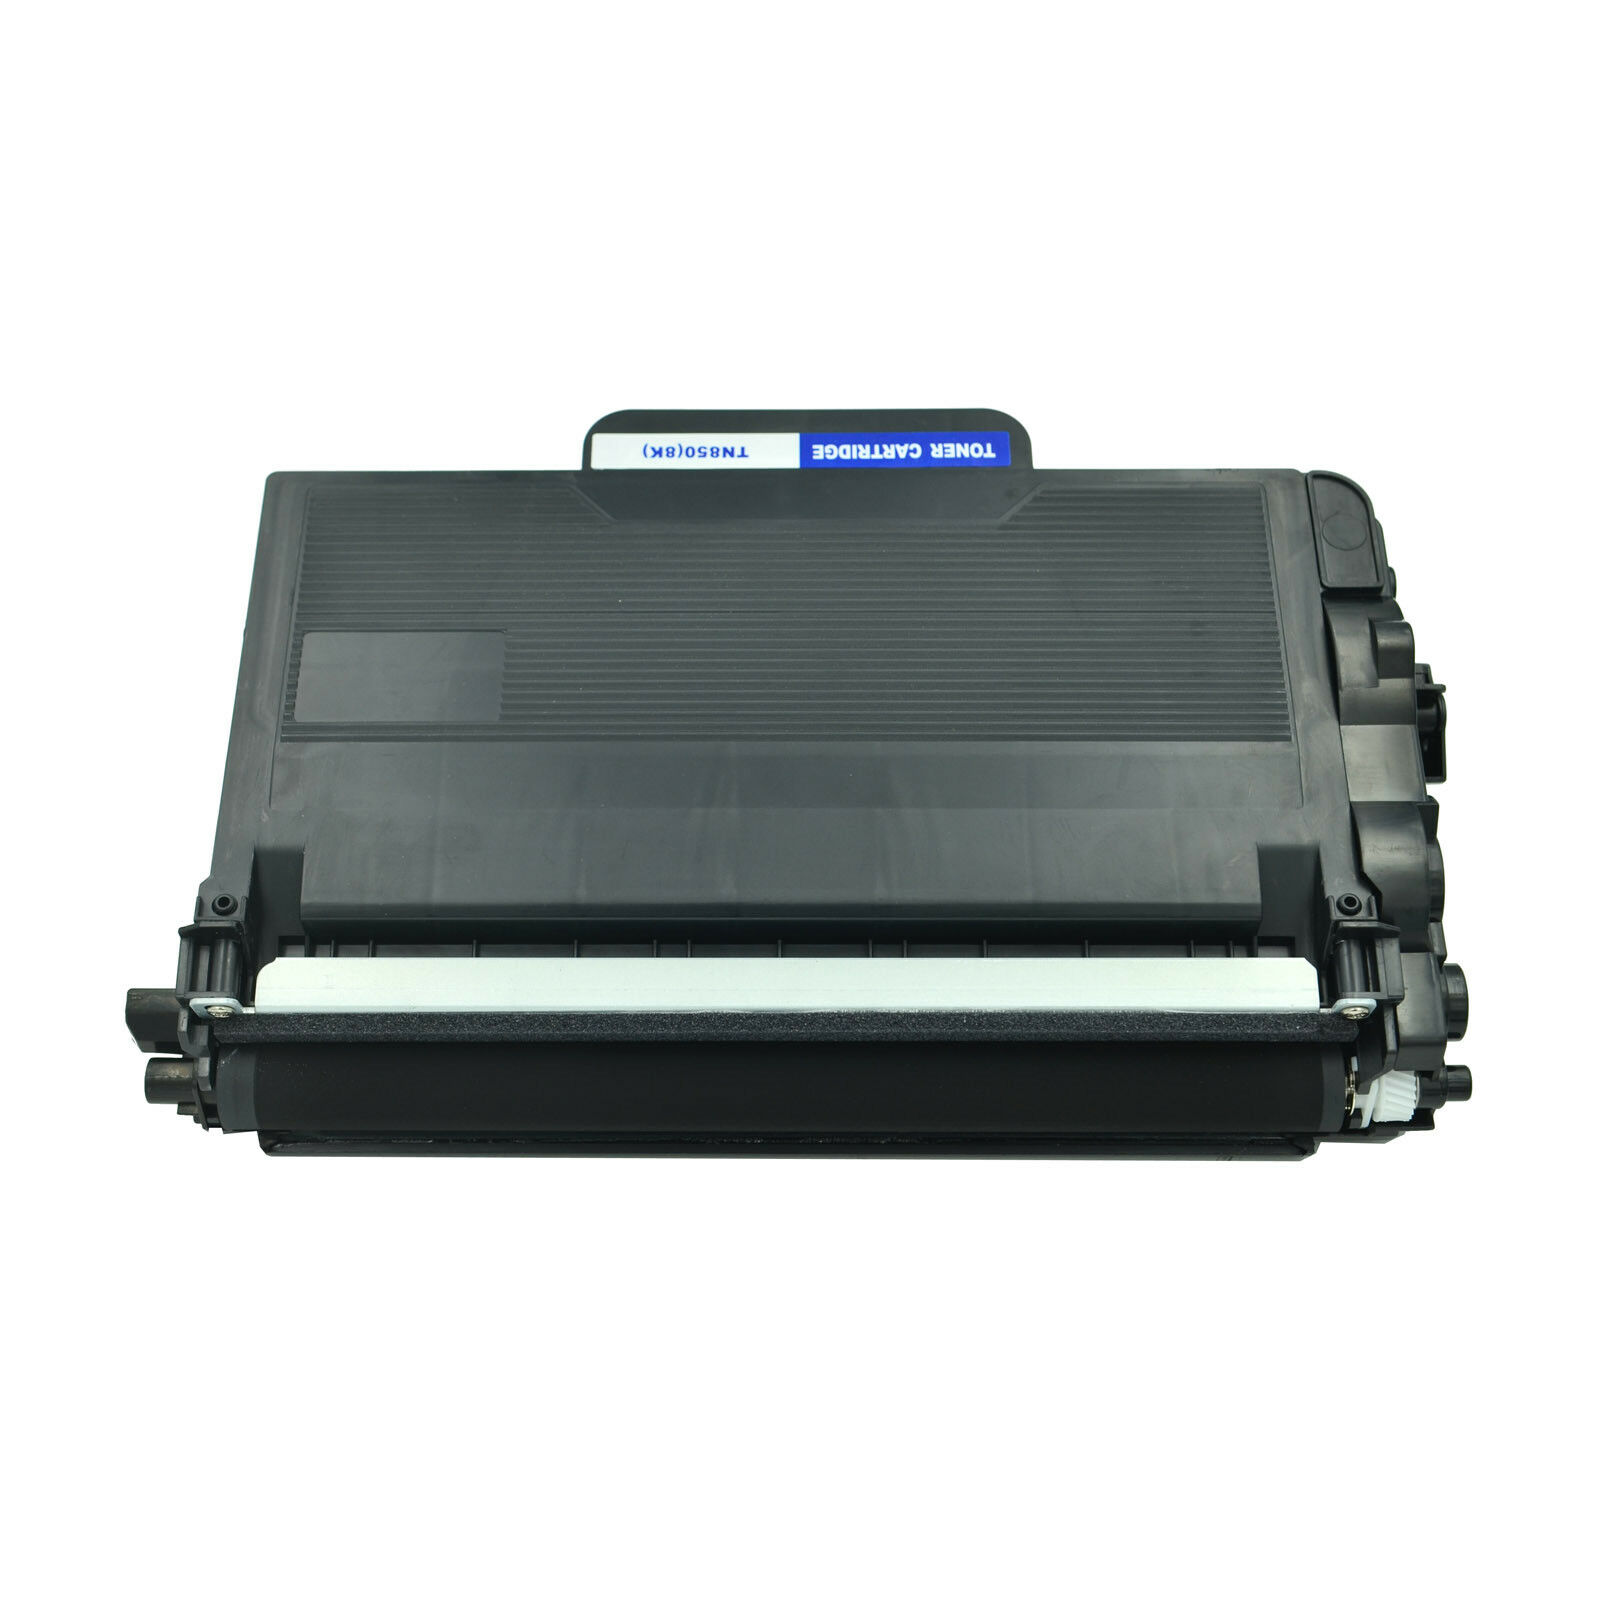 DR820 Drum Unit for Brother HL-L5000D HL-L5100DN HL-L5200DW HL-L6200DWT Printer